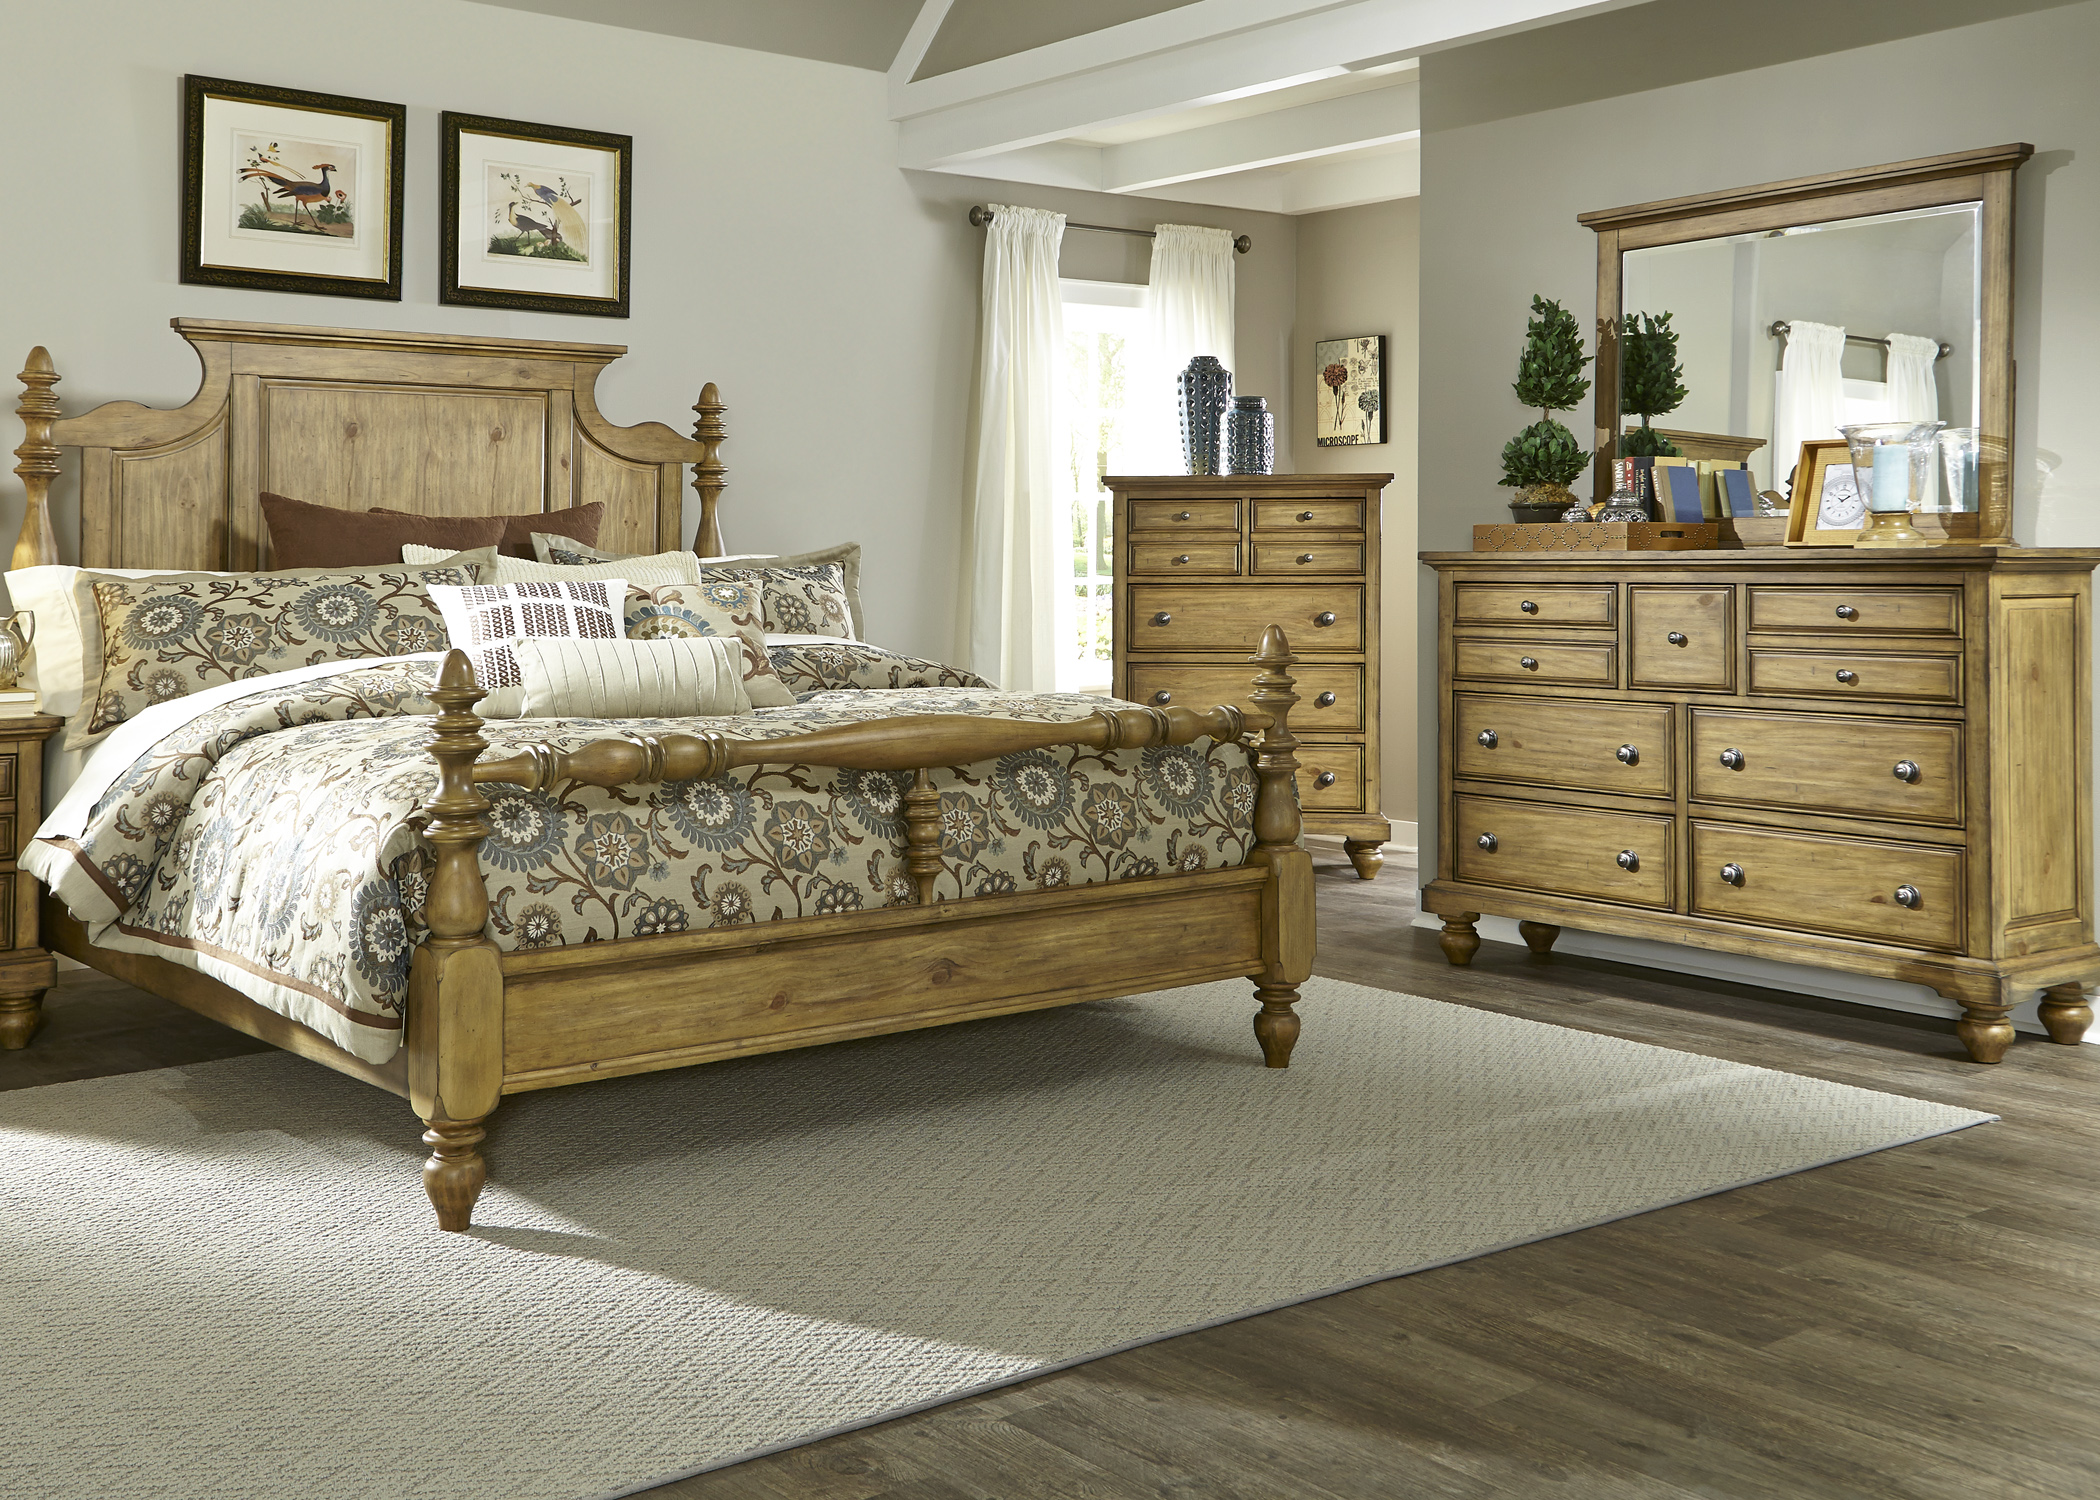 Liberty Furniture High Country King Bedroom Group - Item Number: 797-BR-KPSDMC